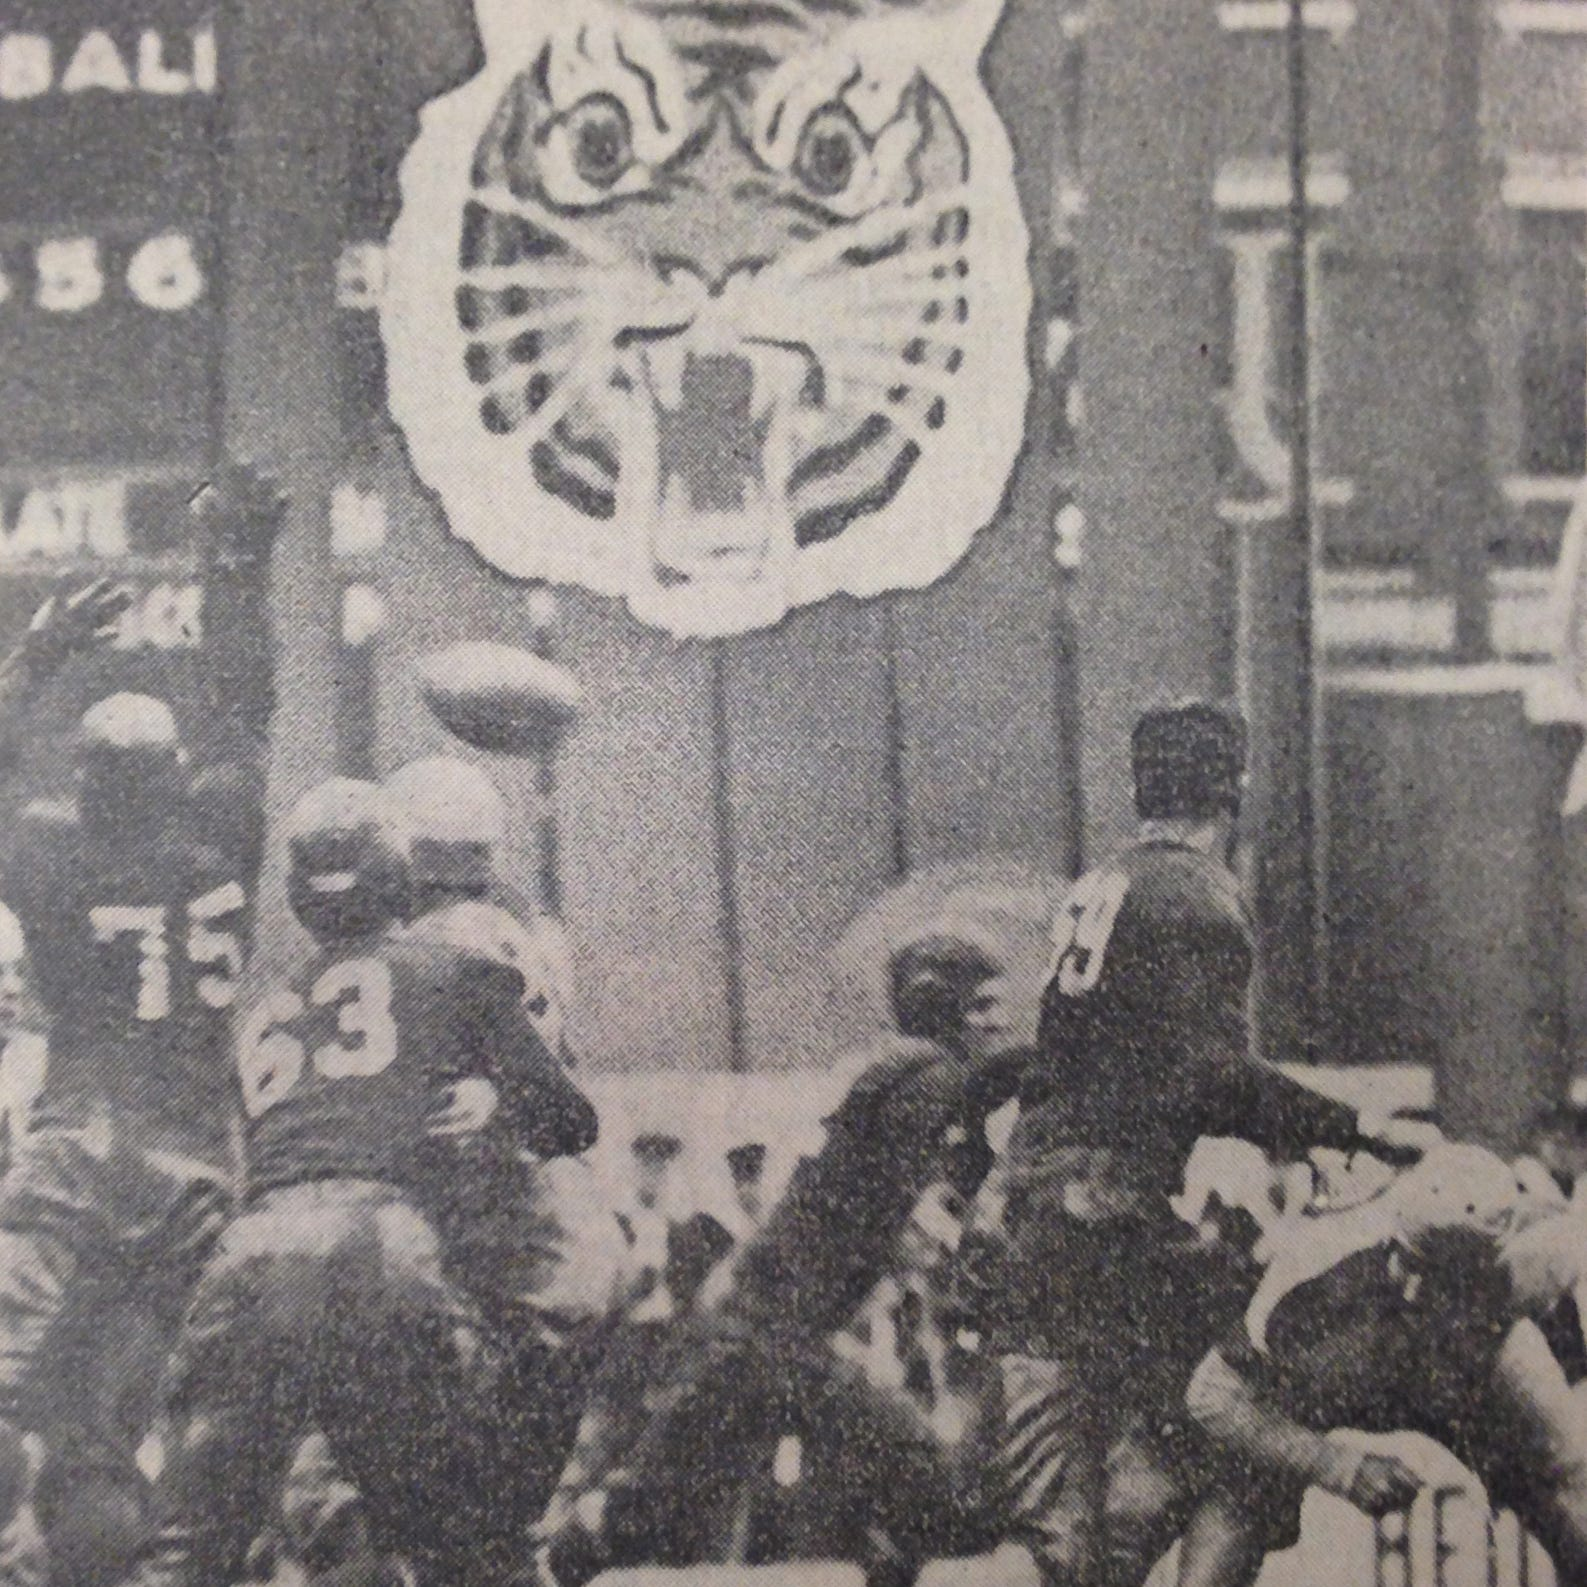 Our history: Cincinnati football before the Bengals